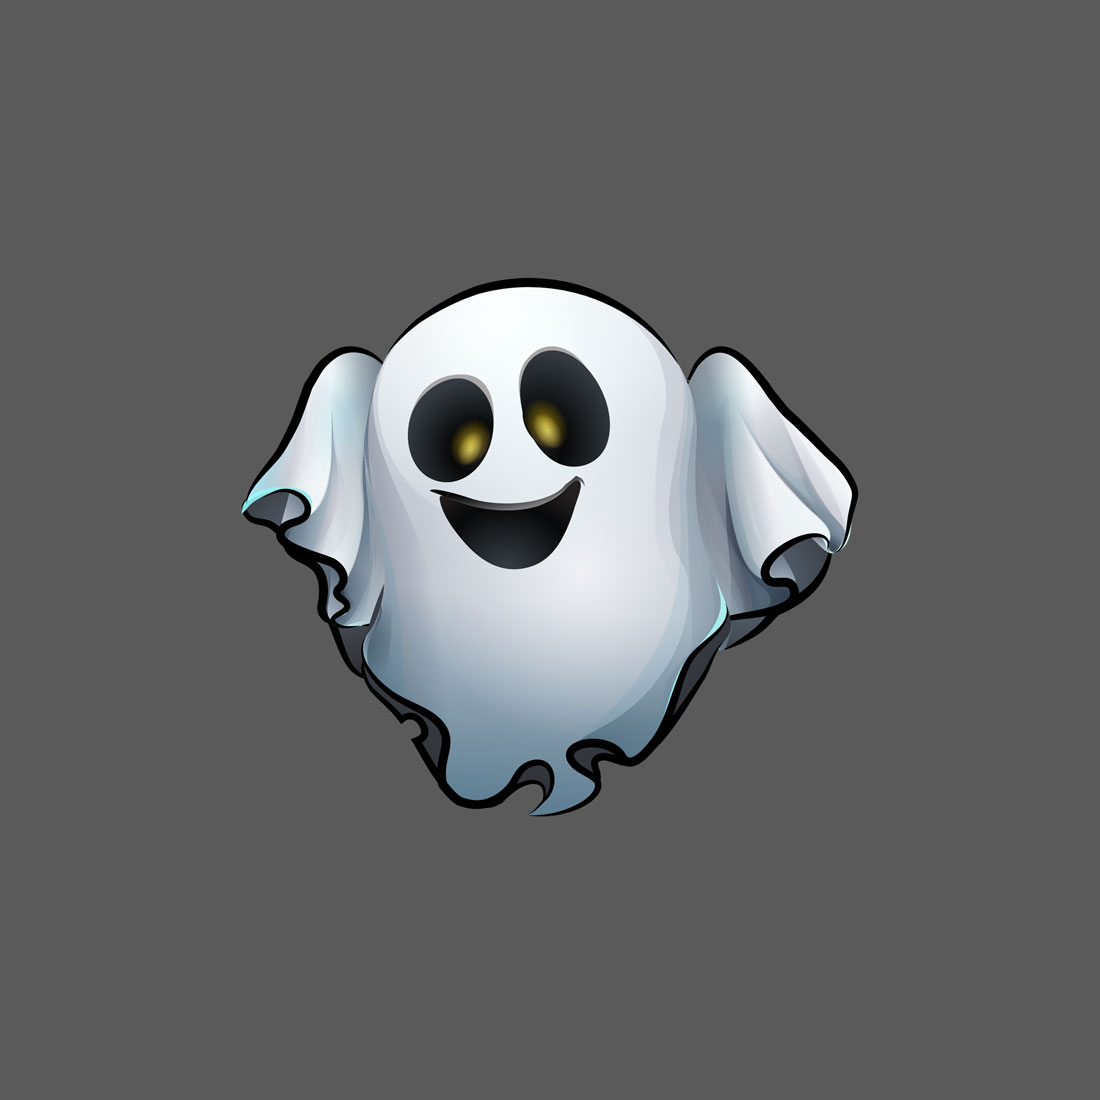 Funny ghost - 2D mobile game character design